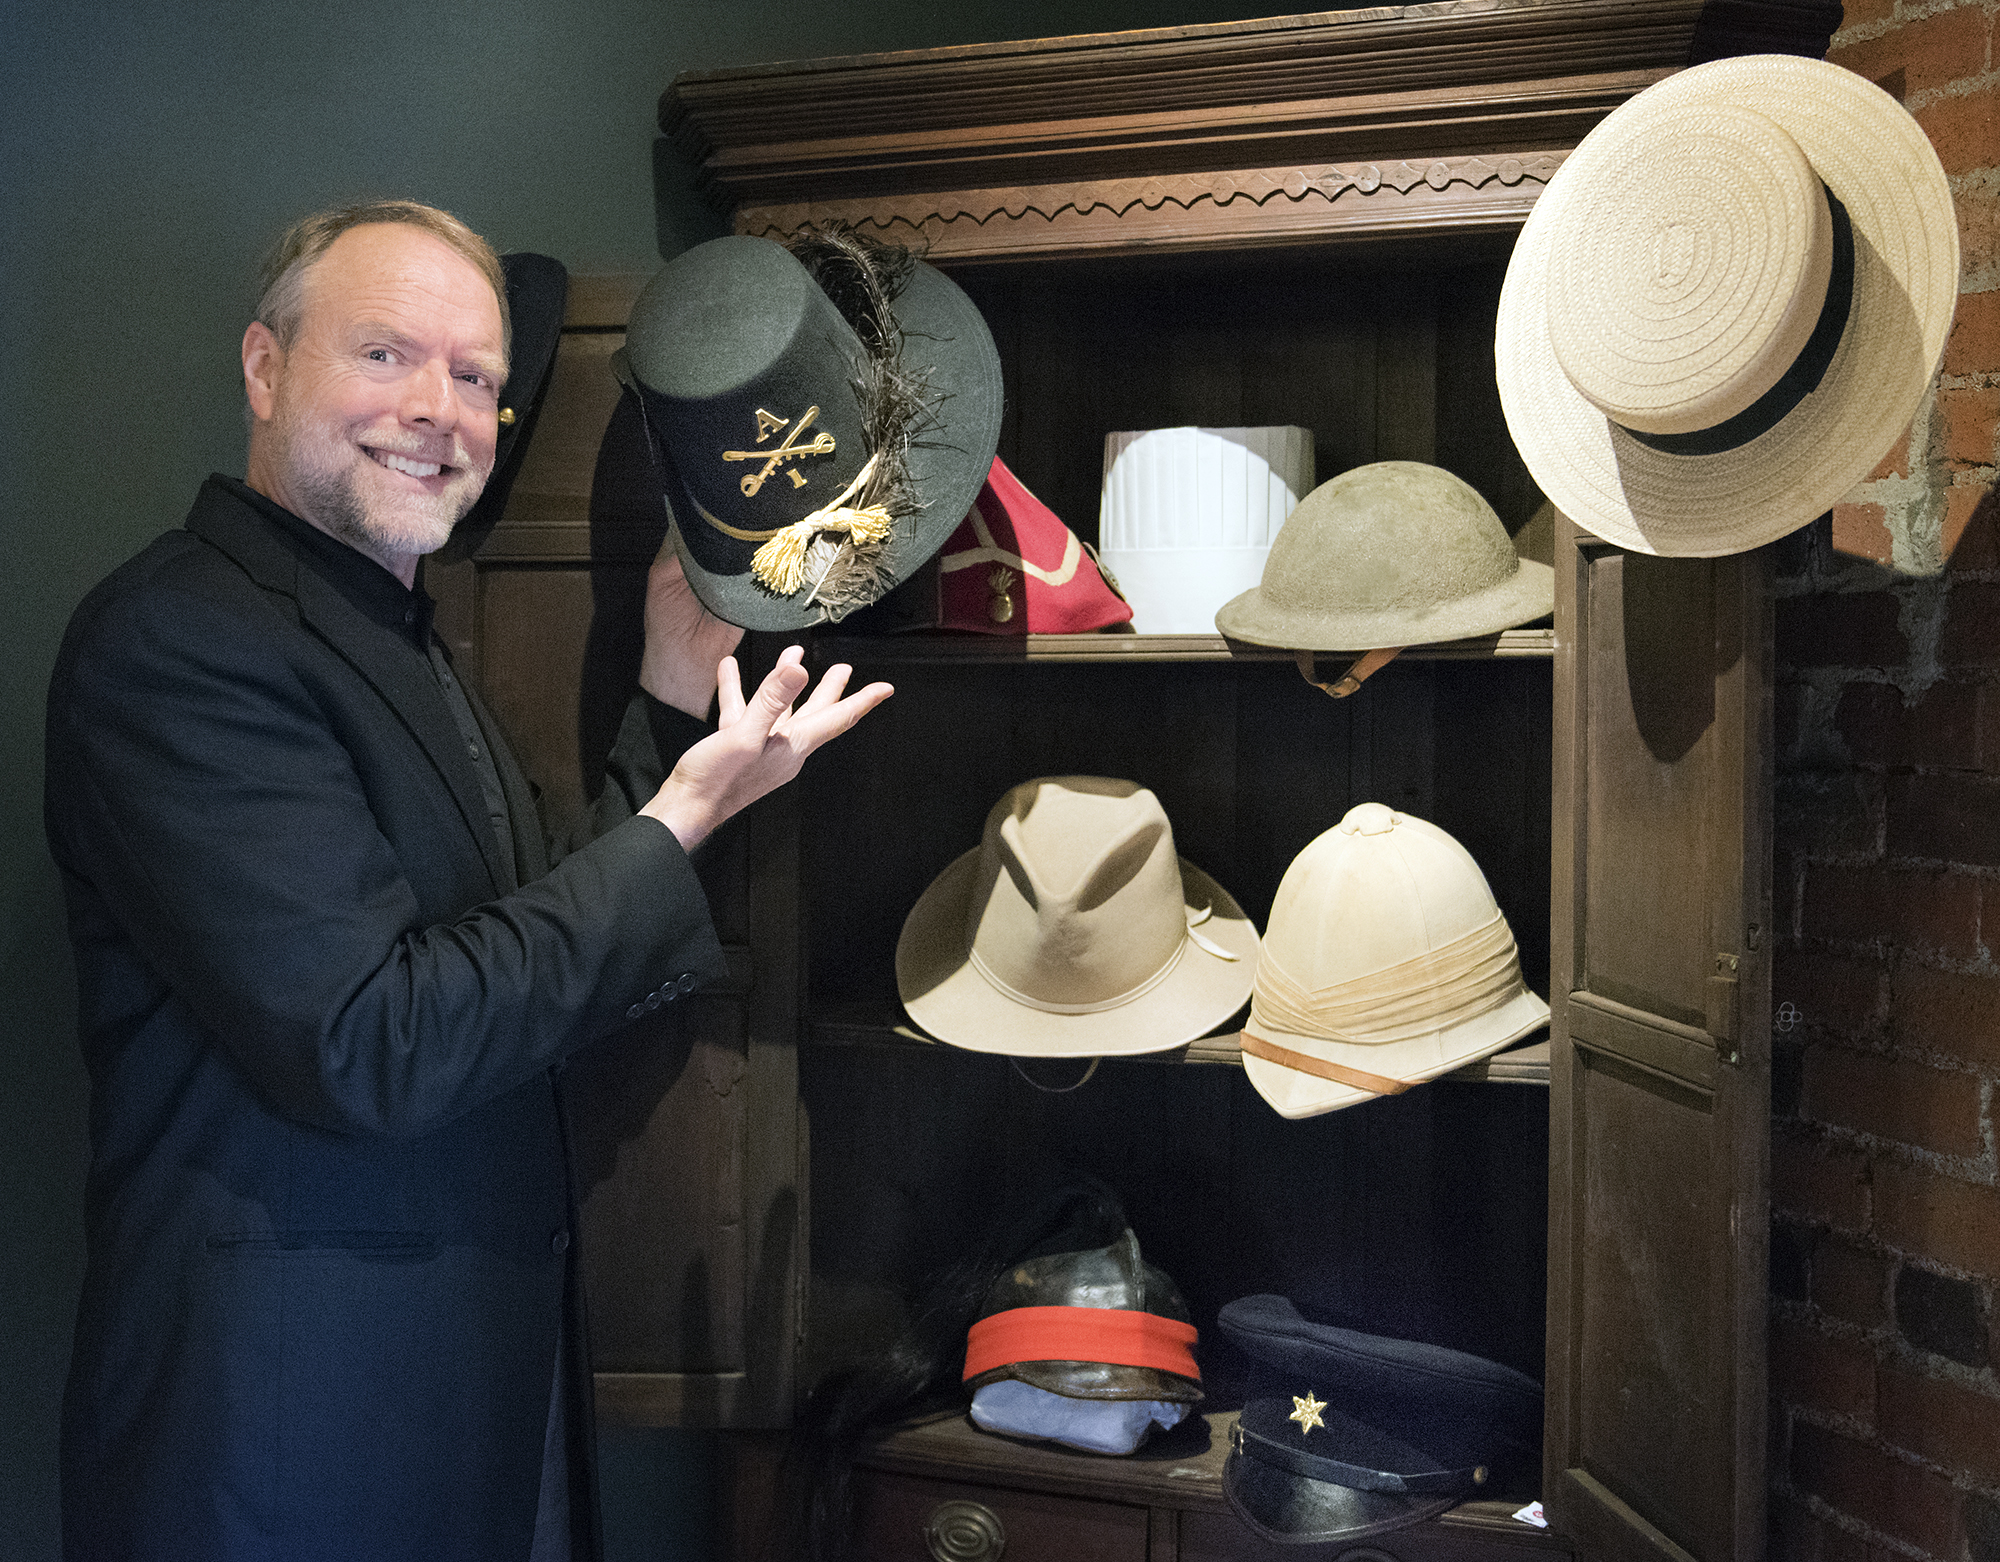 Andy with his historic hat collection.